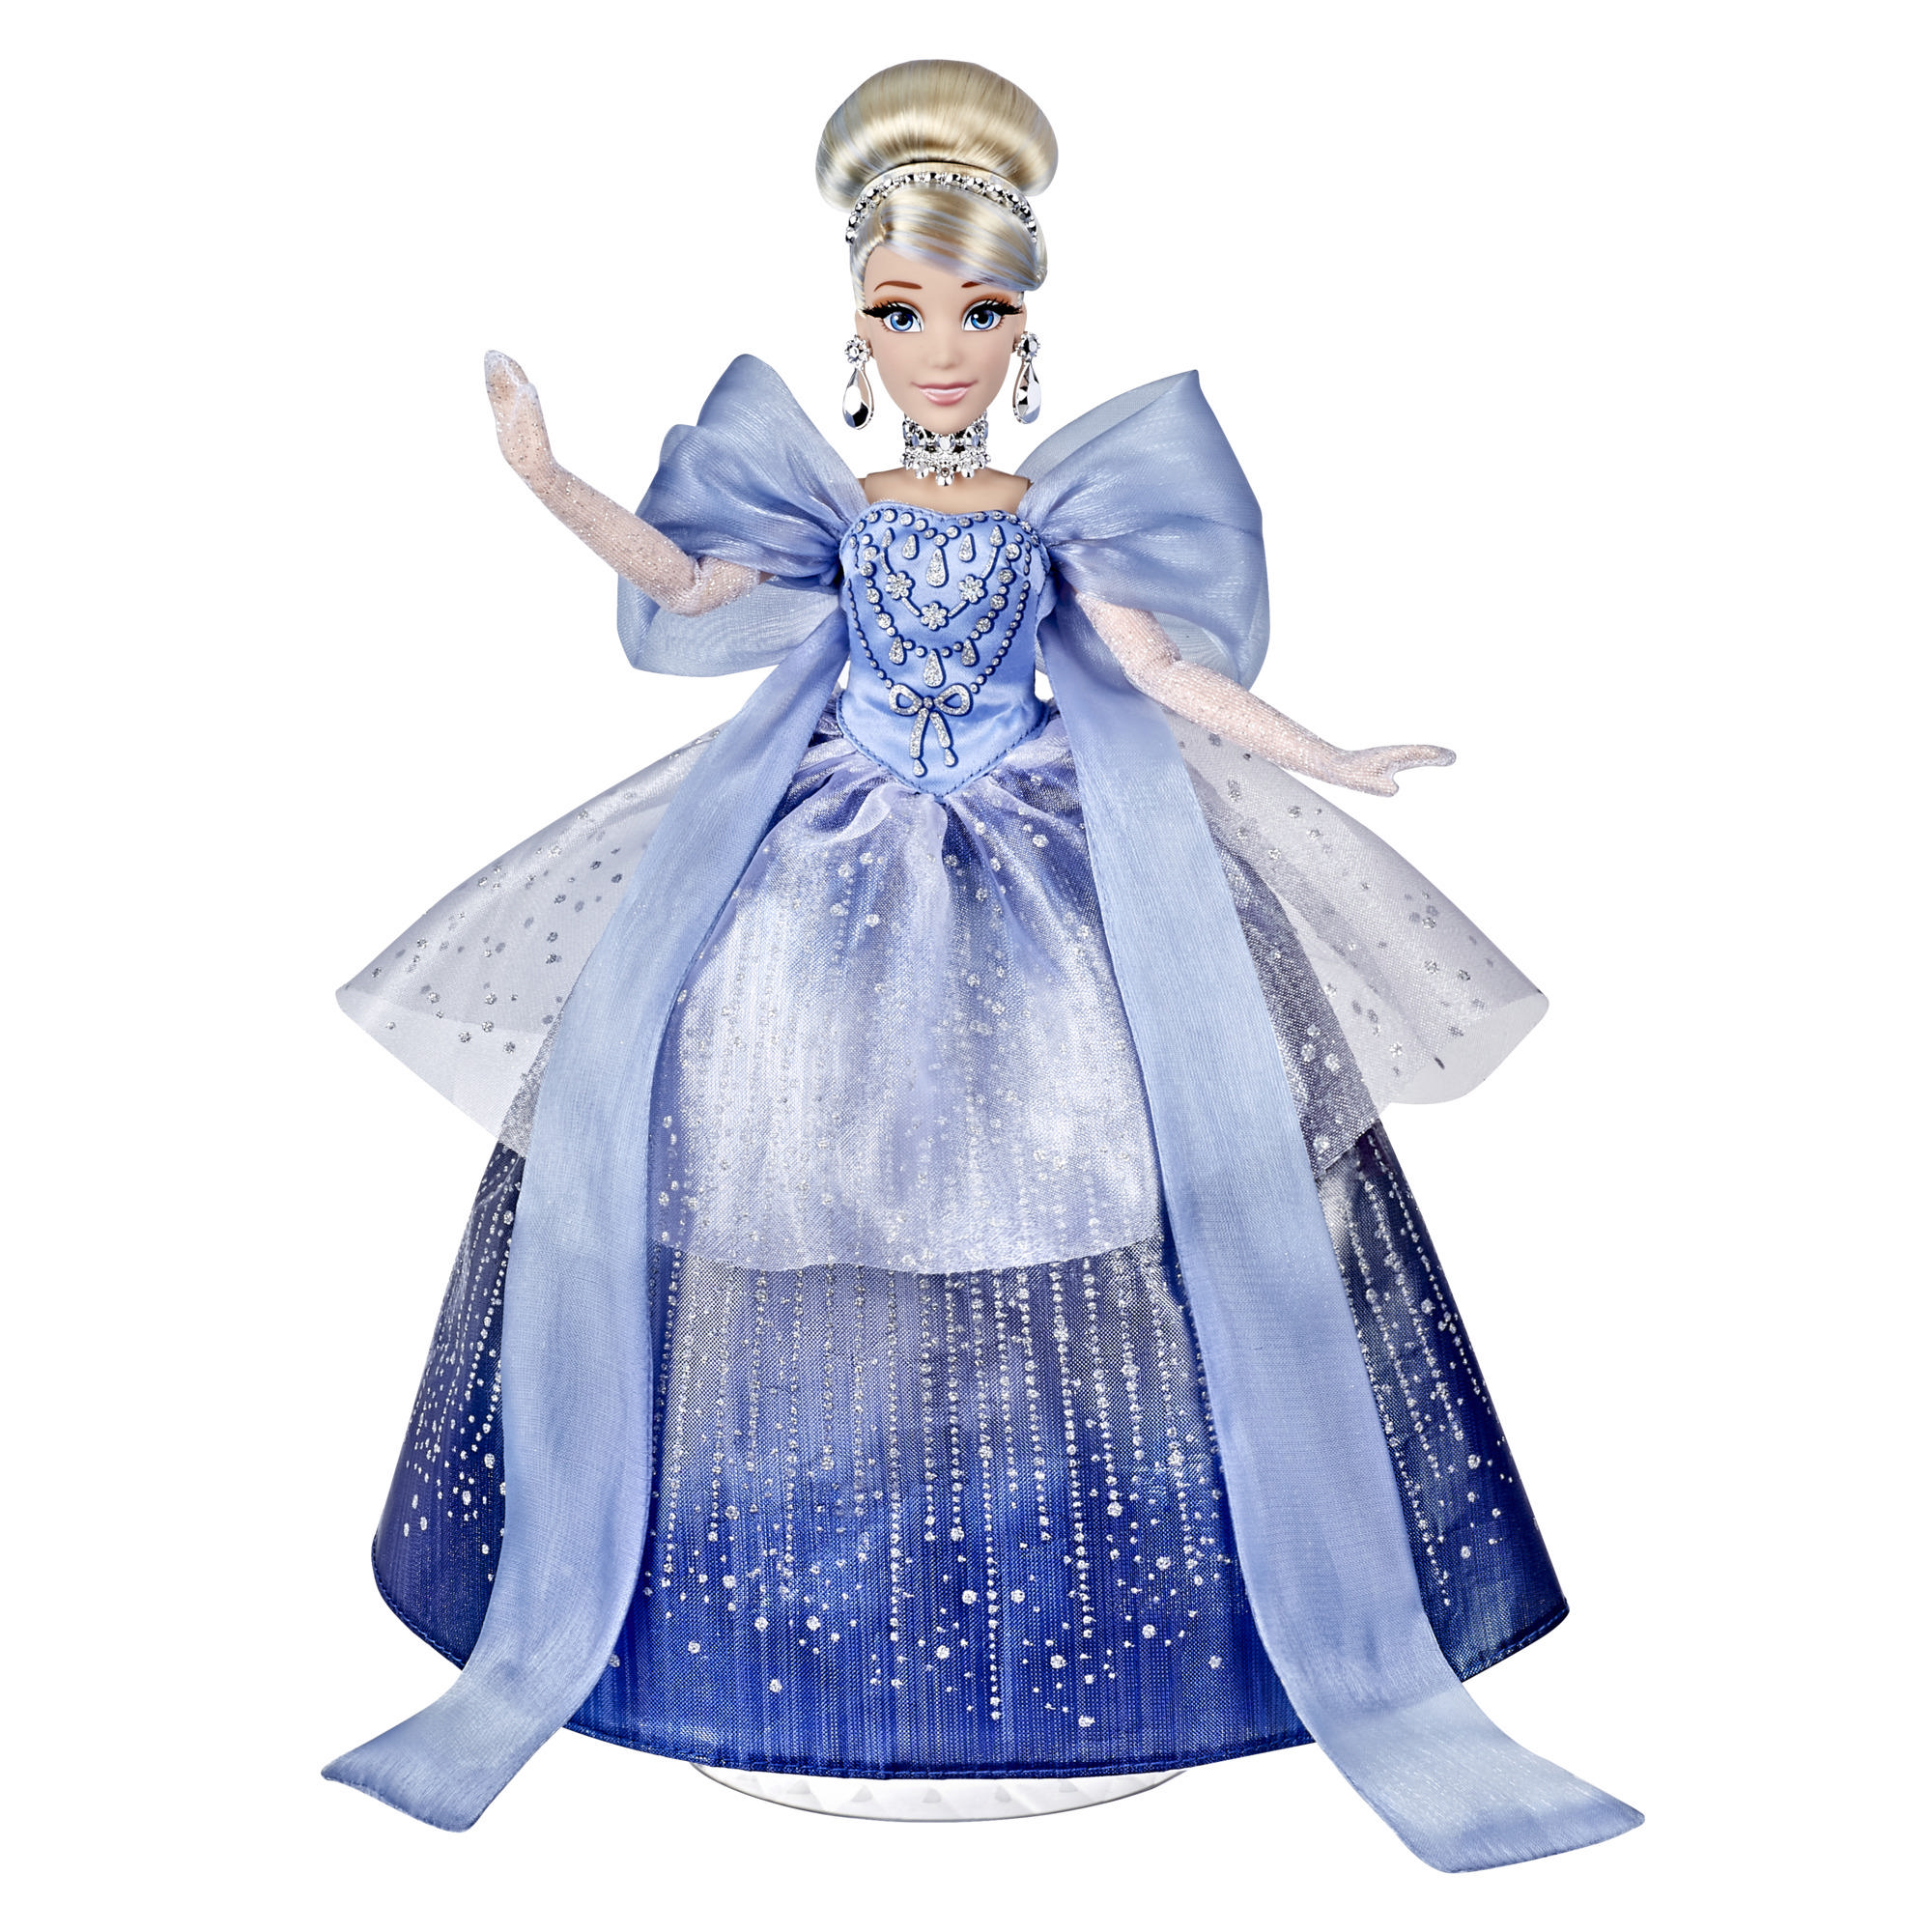 Disney Princess Style Series Holiday Style Cinderella, Christmas 2020 Fashion Collector Doll, Toy for Girls 6 and Up